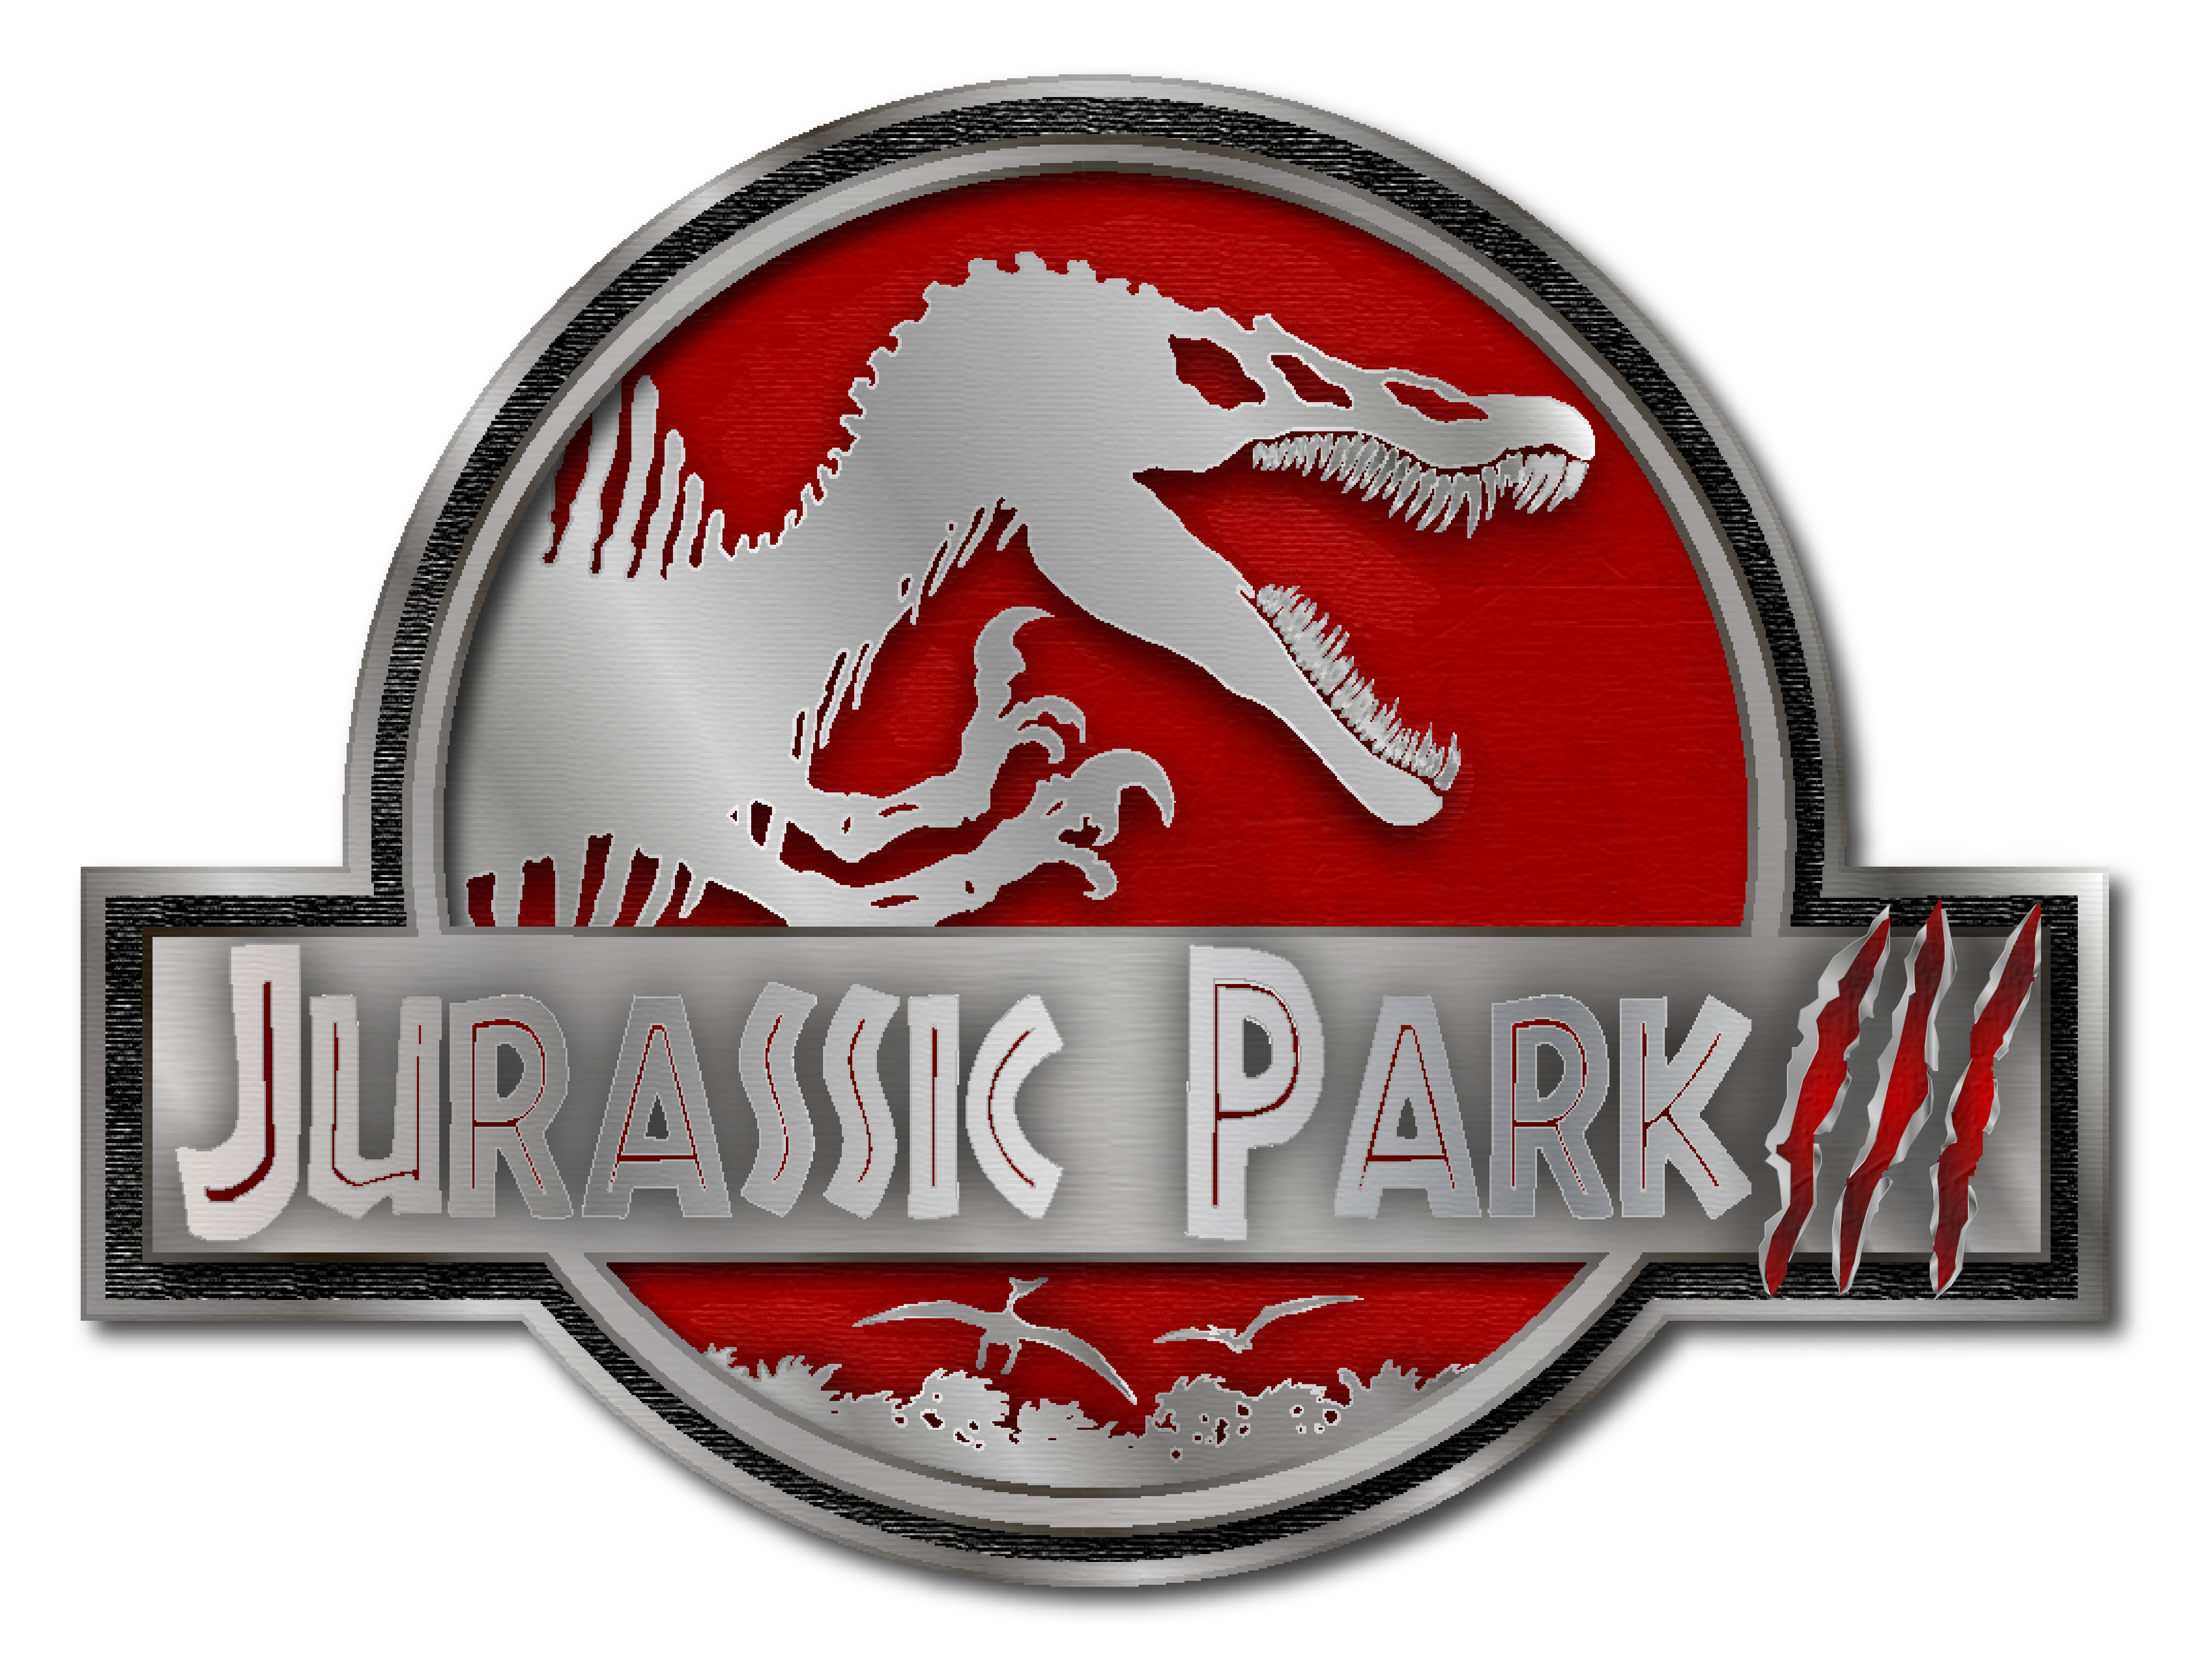 jurassic park movies 3 logo png